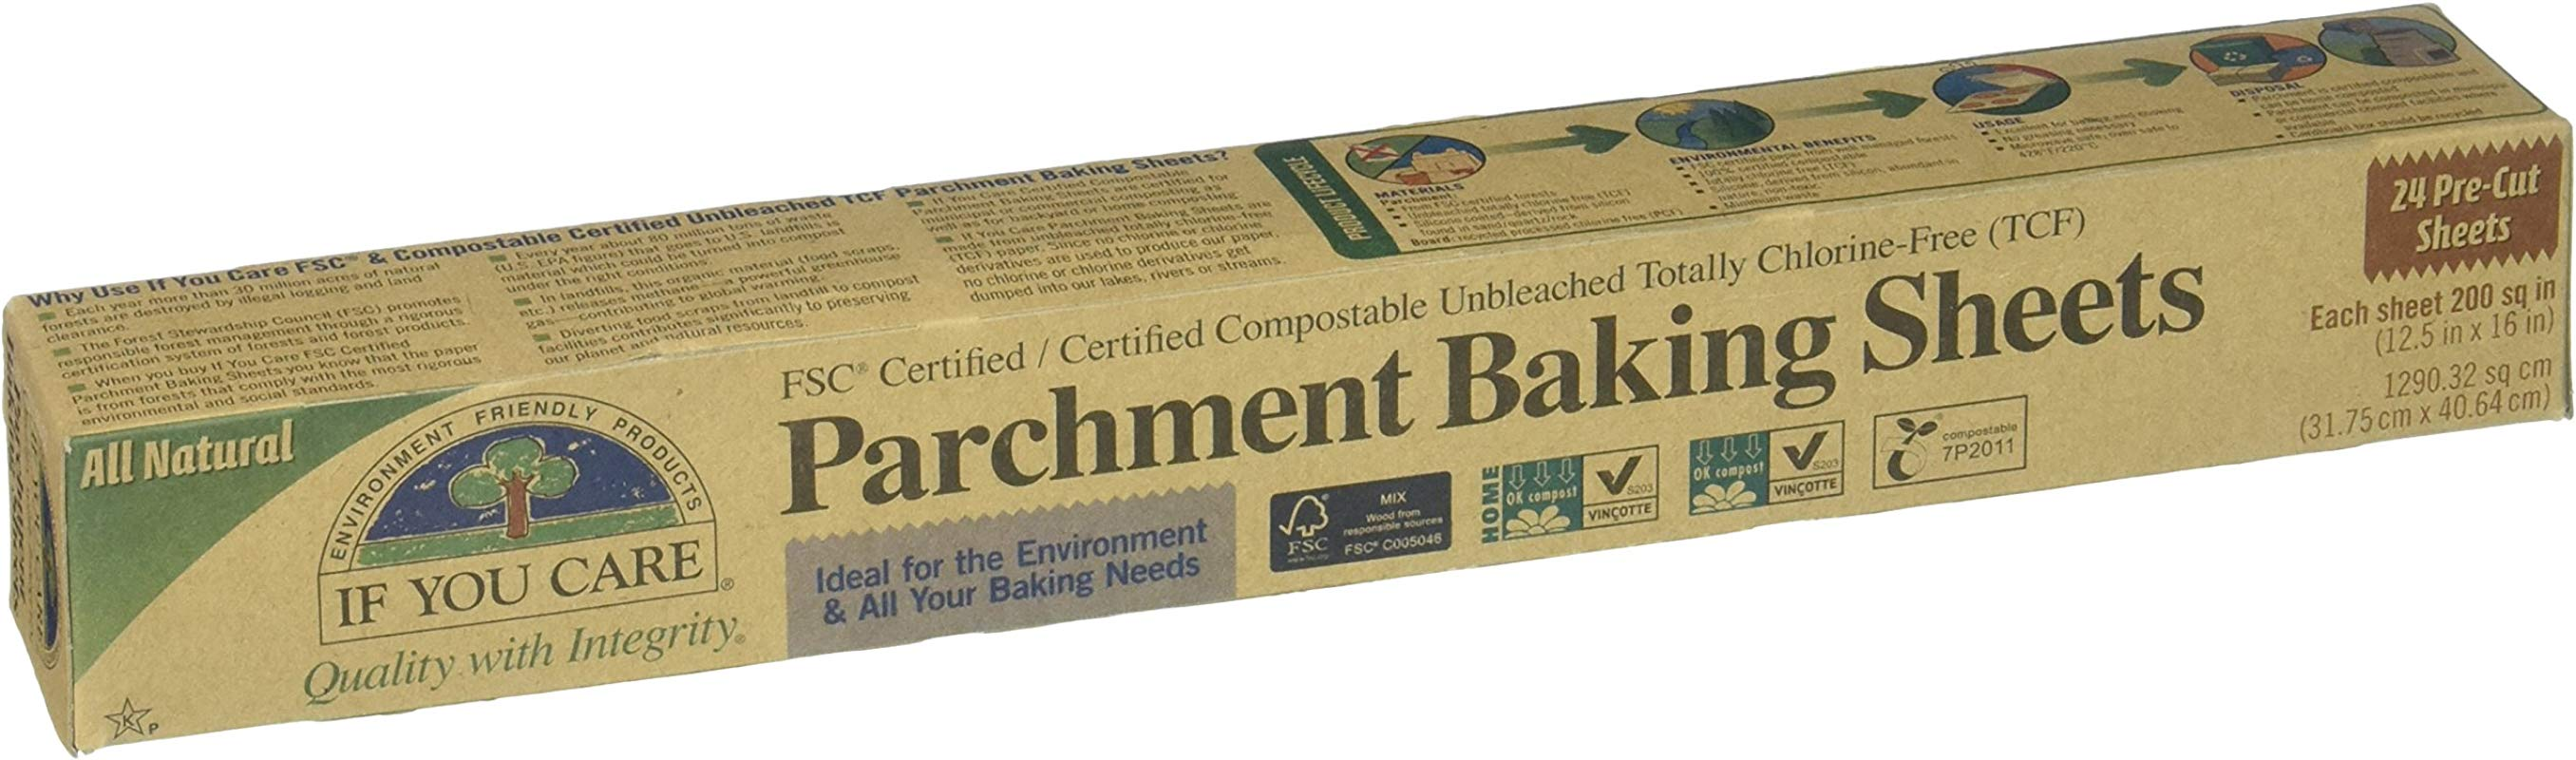 If You Care Parchment Baking Sheets FSC Certified 24 Ct